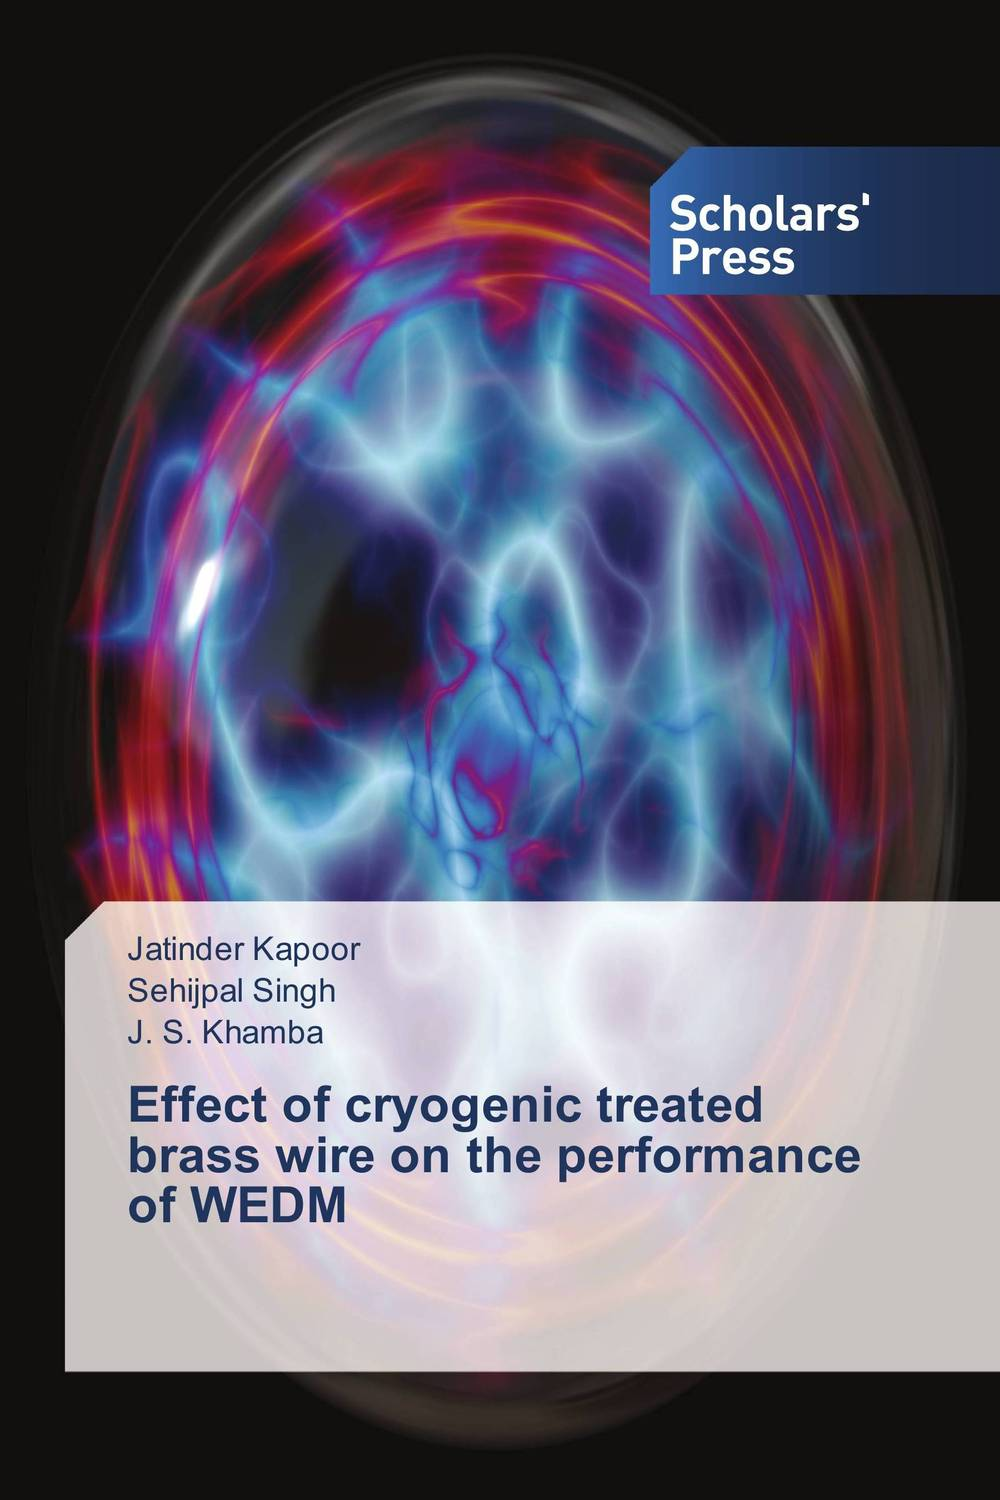 Effect of cryogenic treated brass wire on the performance of WEDM hifz ul rahman jalees ahmed bhatti and muhammad saadullah effect of processed alfalfa on the performance of lohi lambs